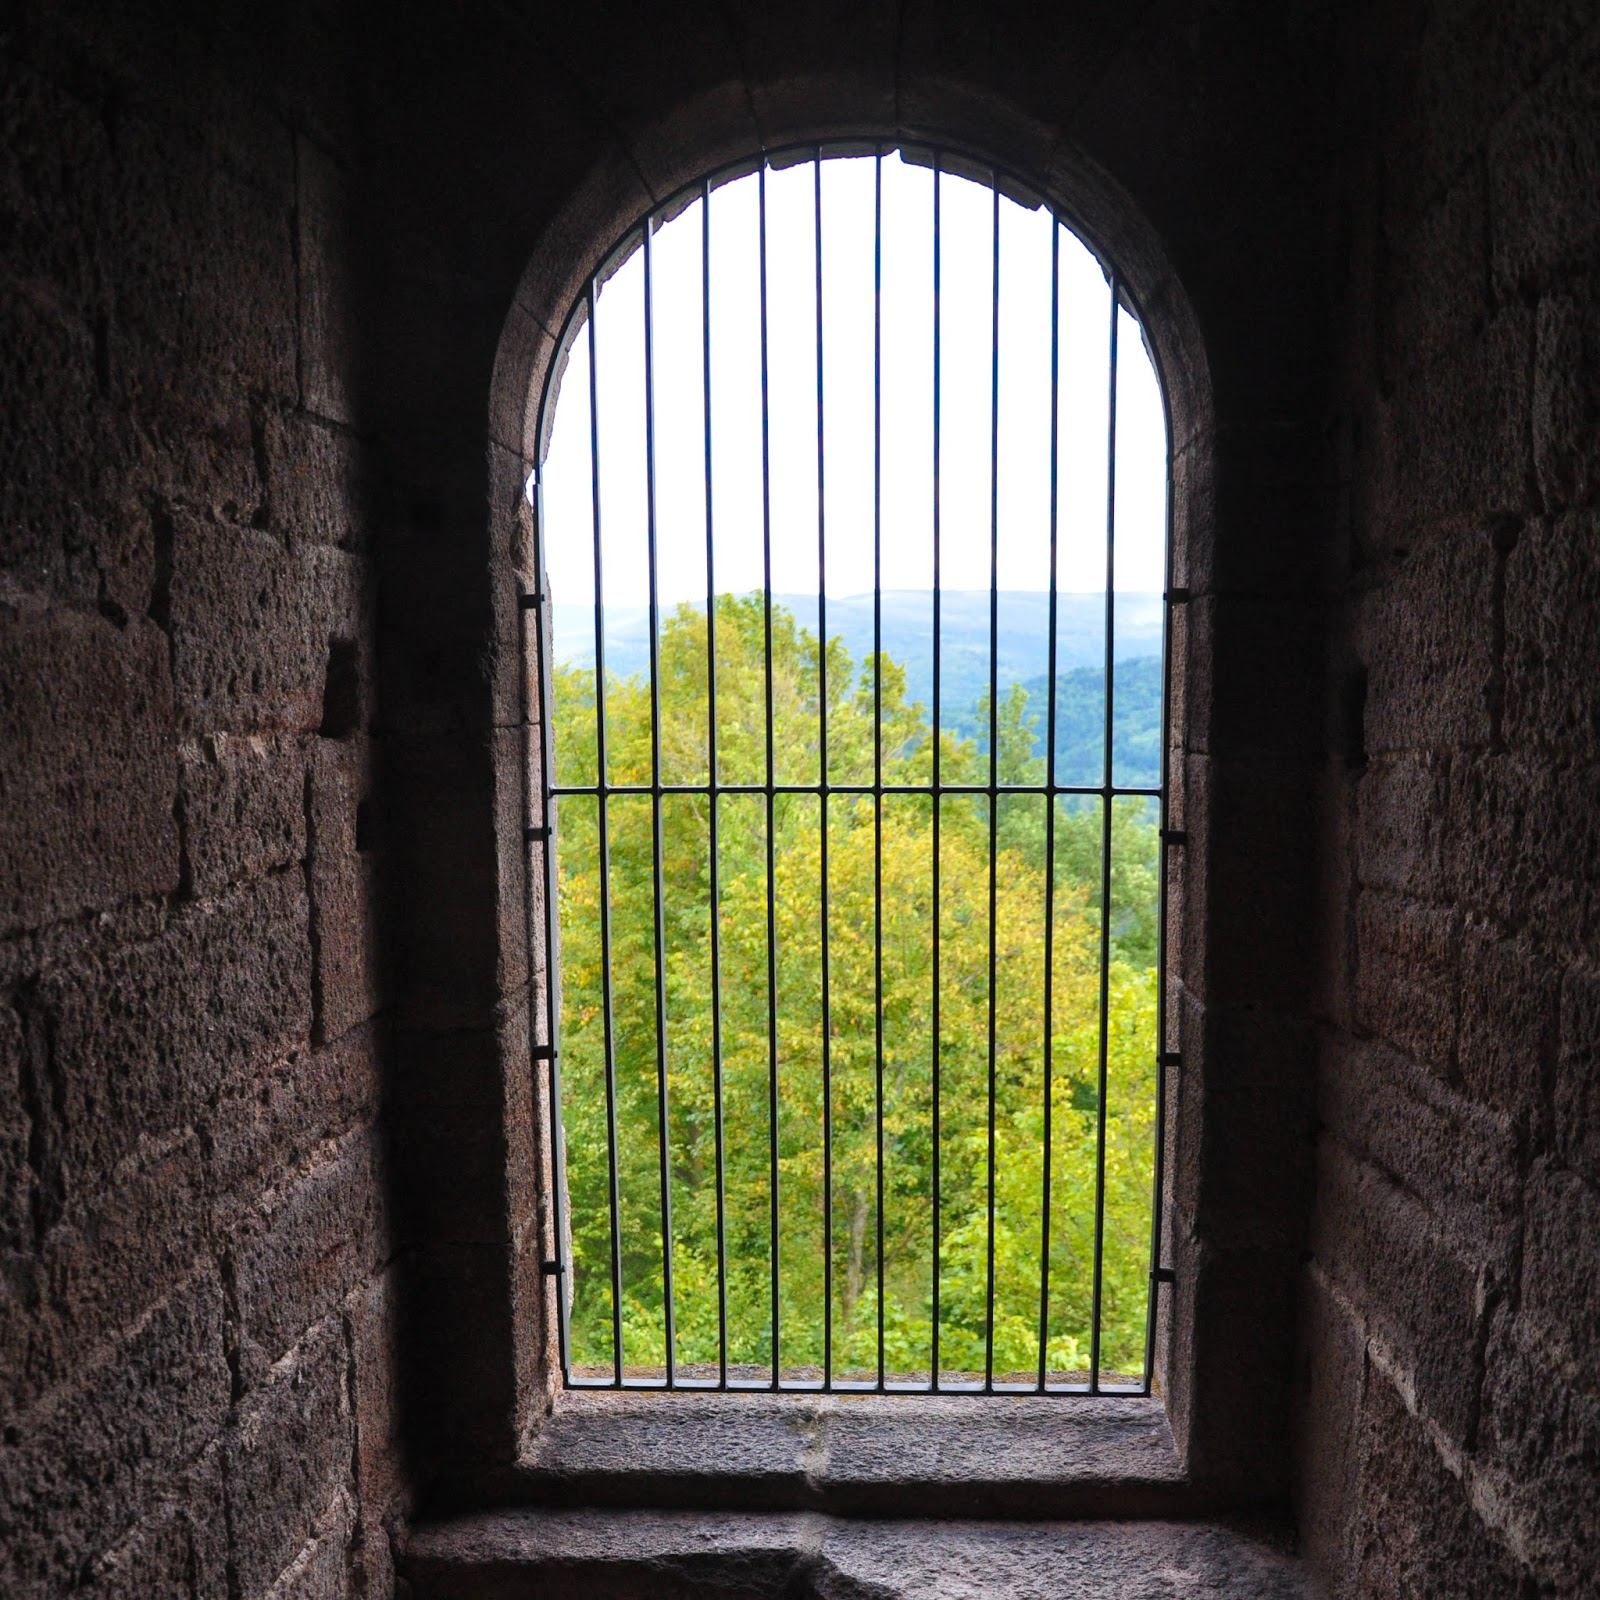 The view from a window of the Yburg Castle tower, Yburg, Germany